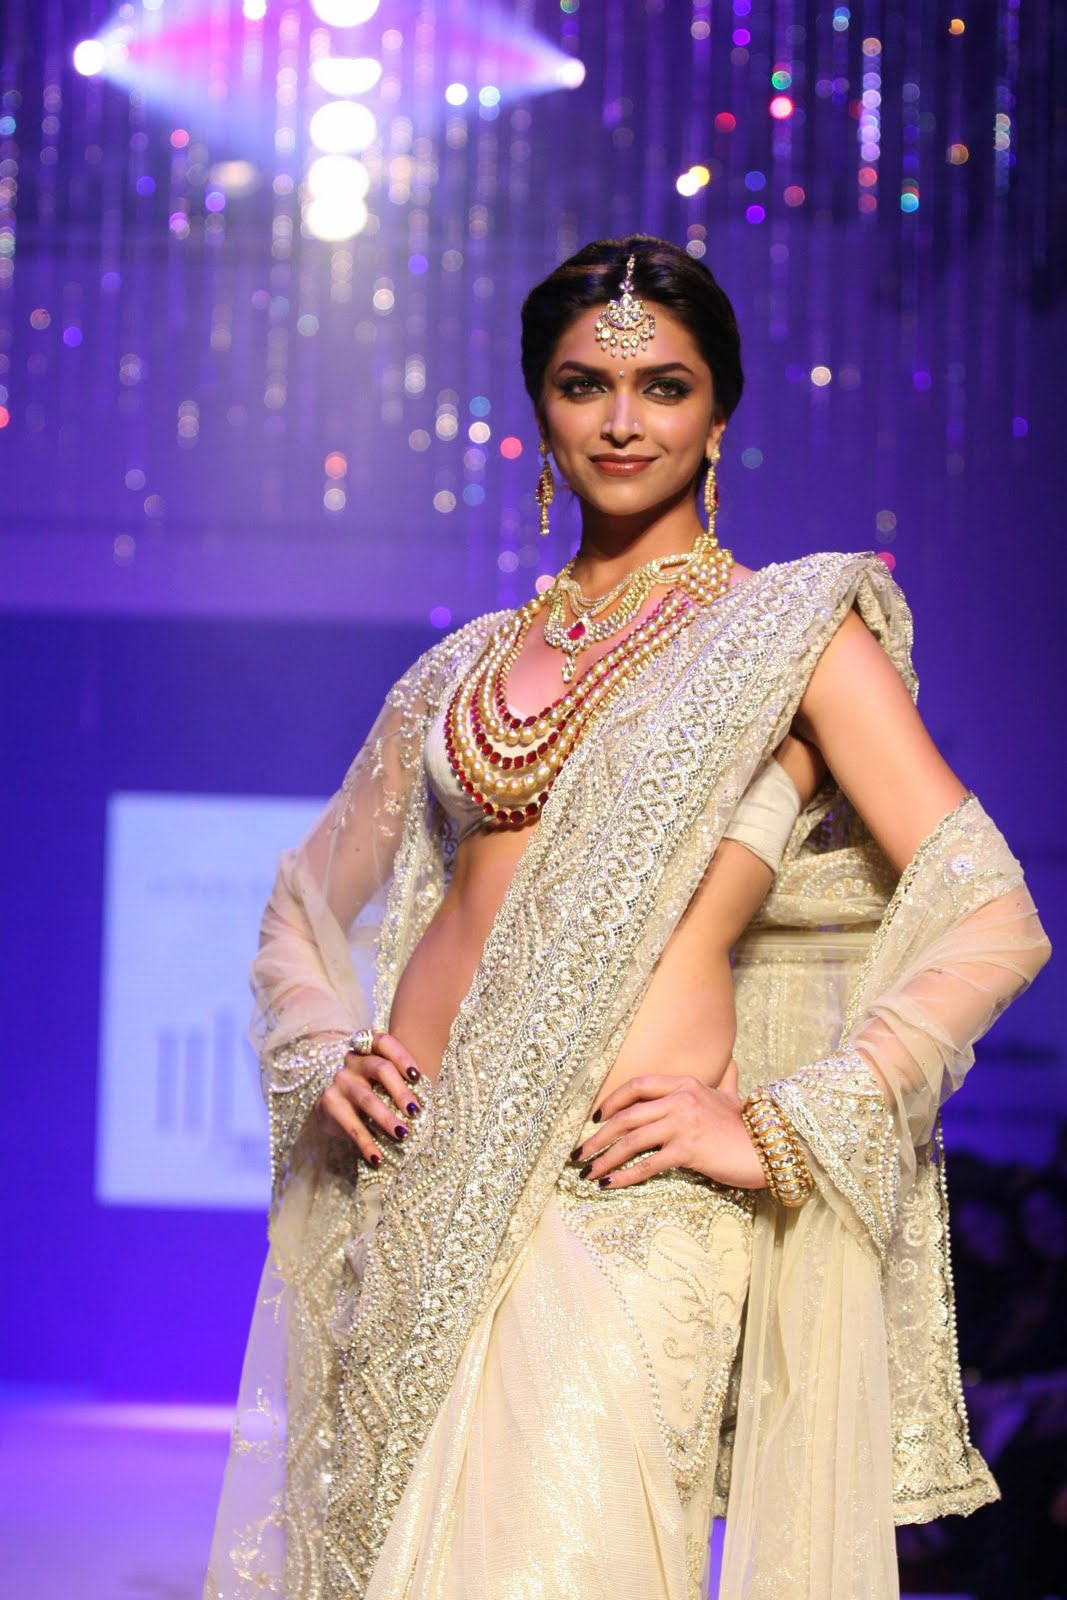 Hairstyle For You: Deepika Padukone Hairstyle and Dress